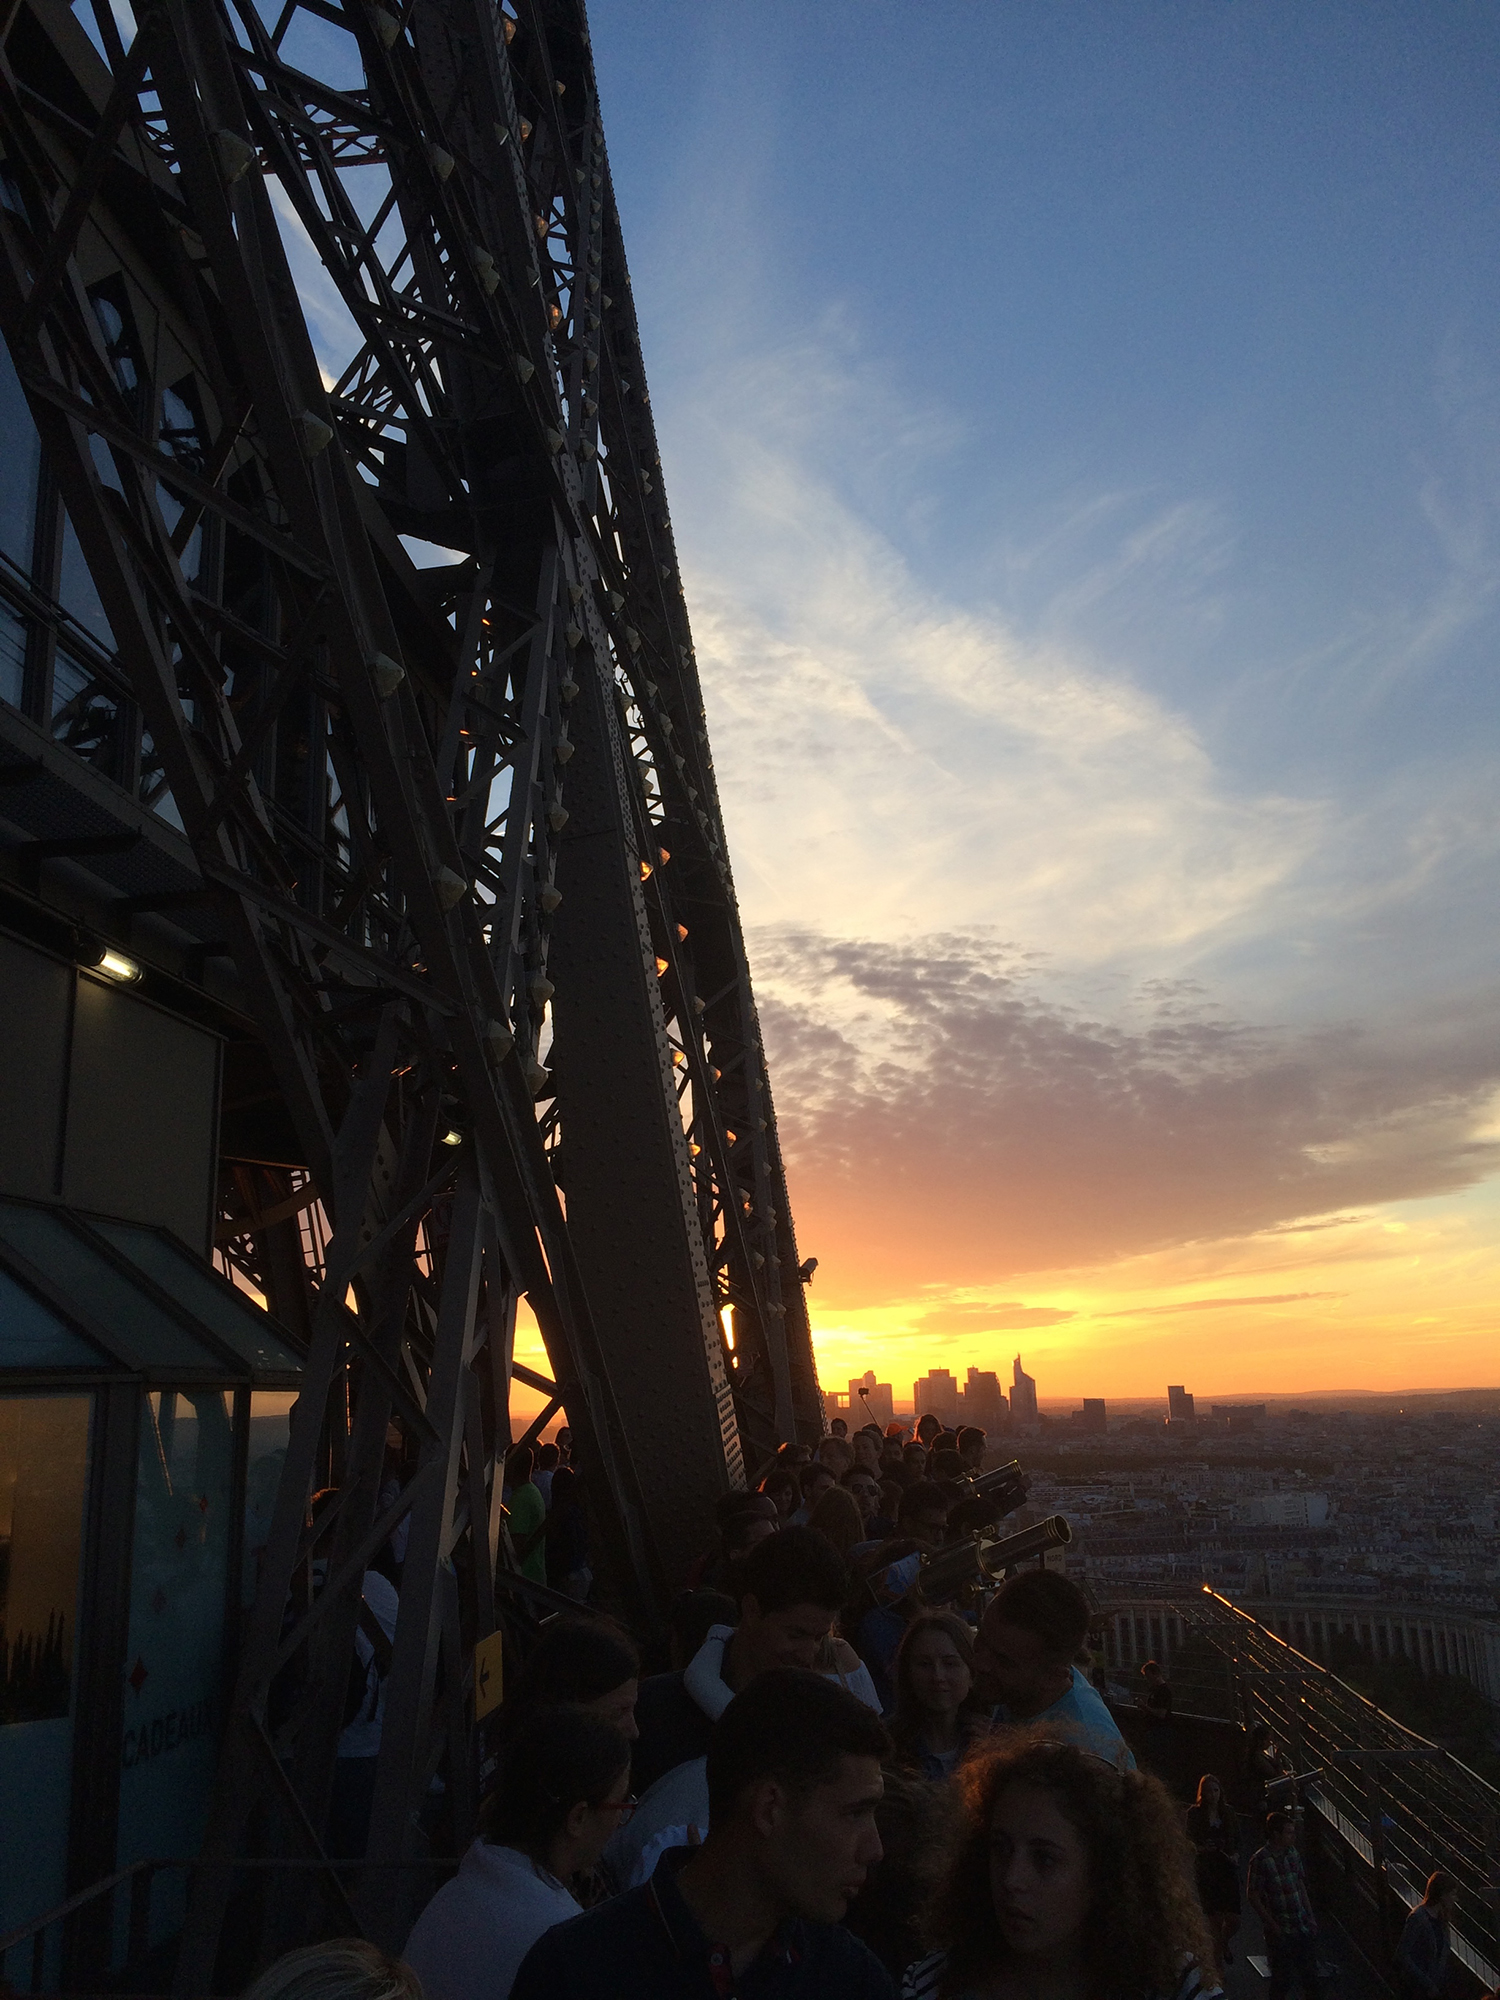 Sunset view from the eiffel tower